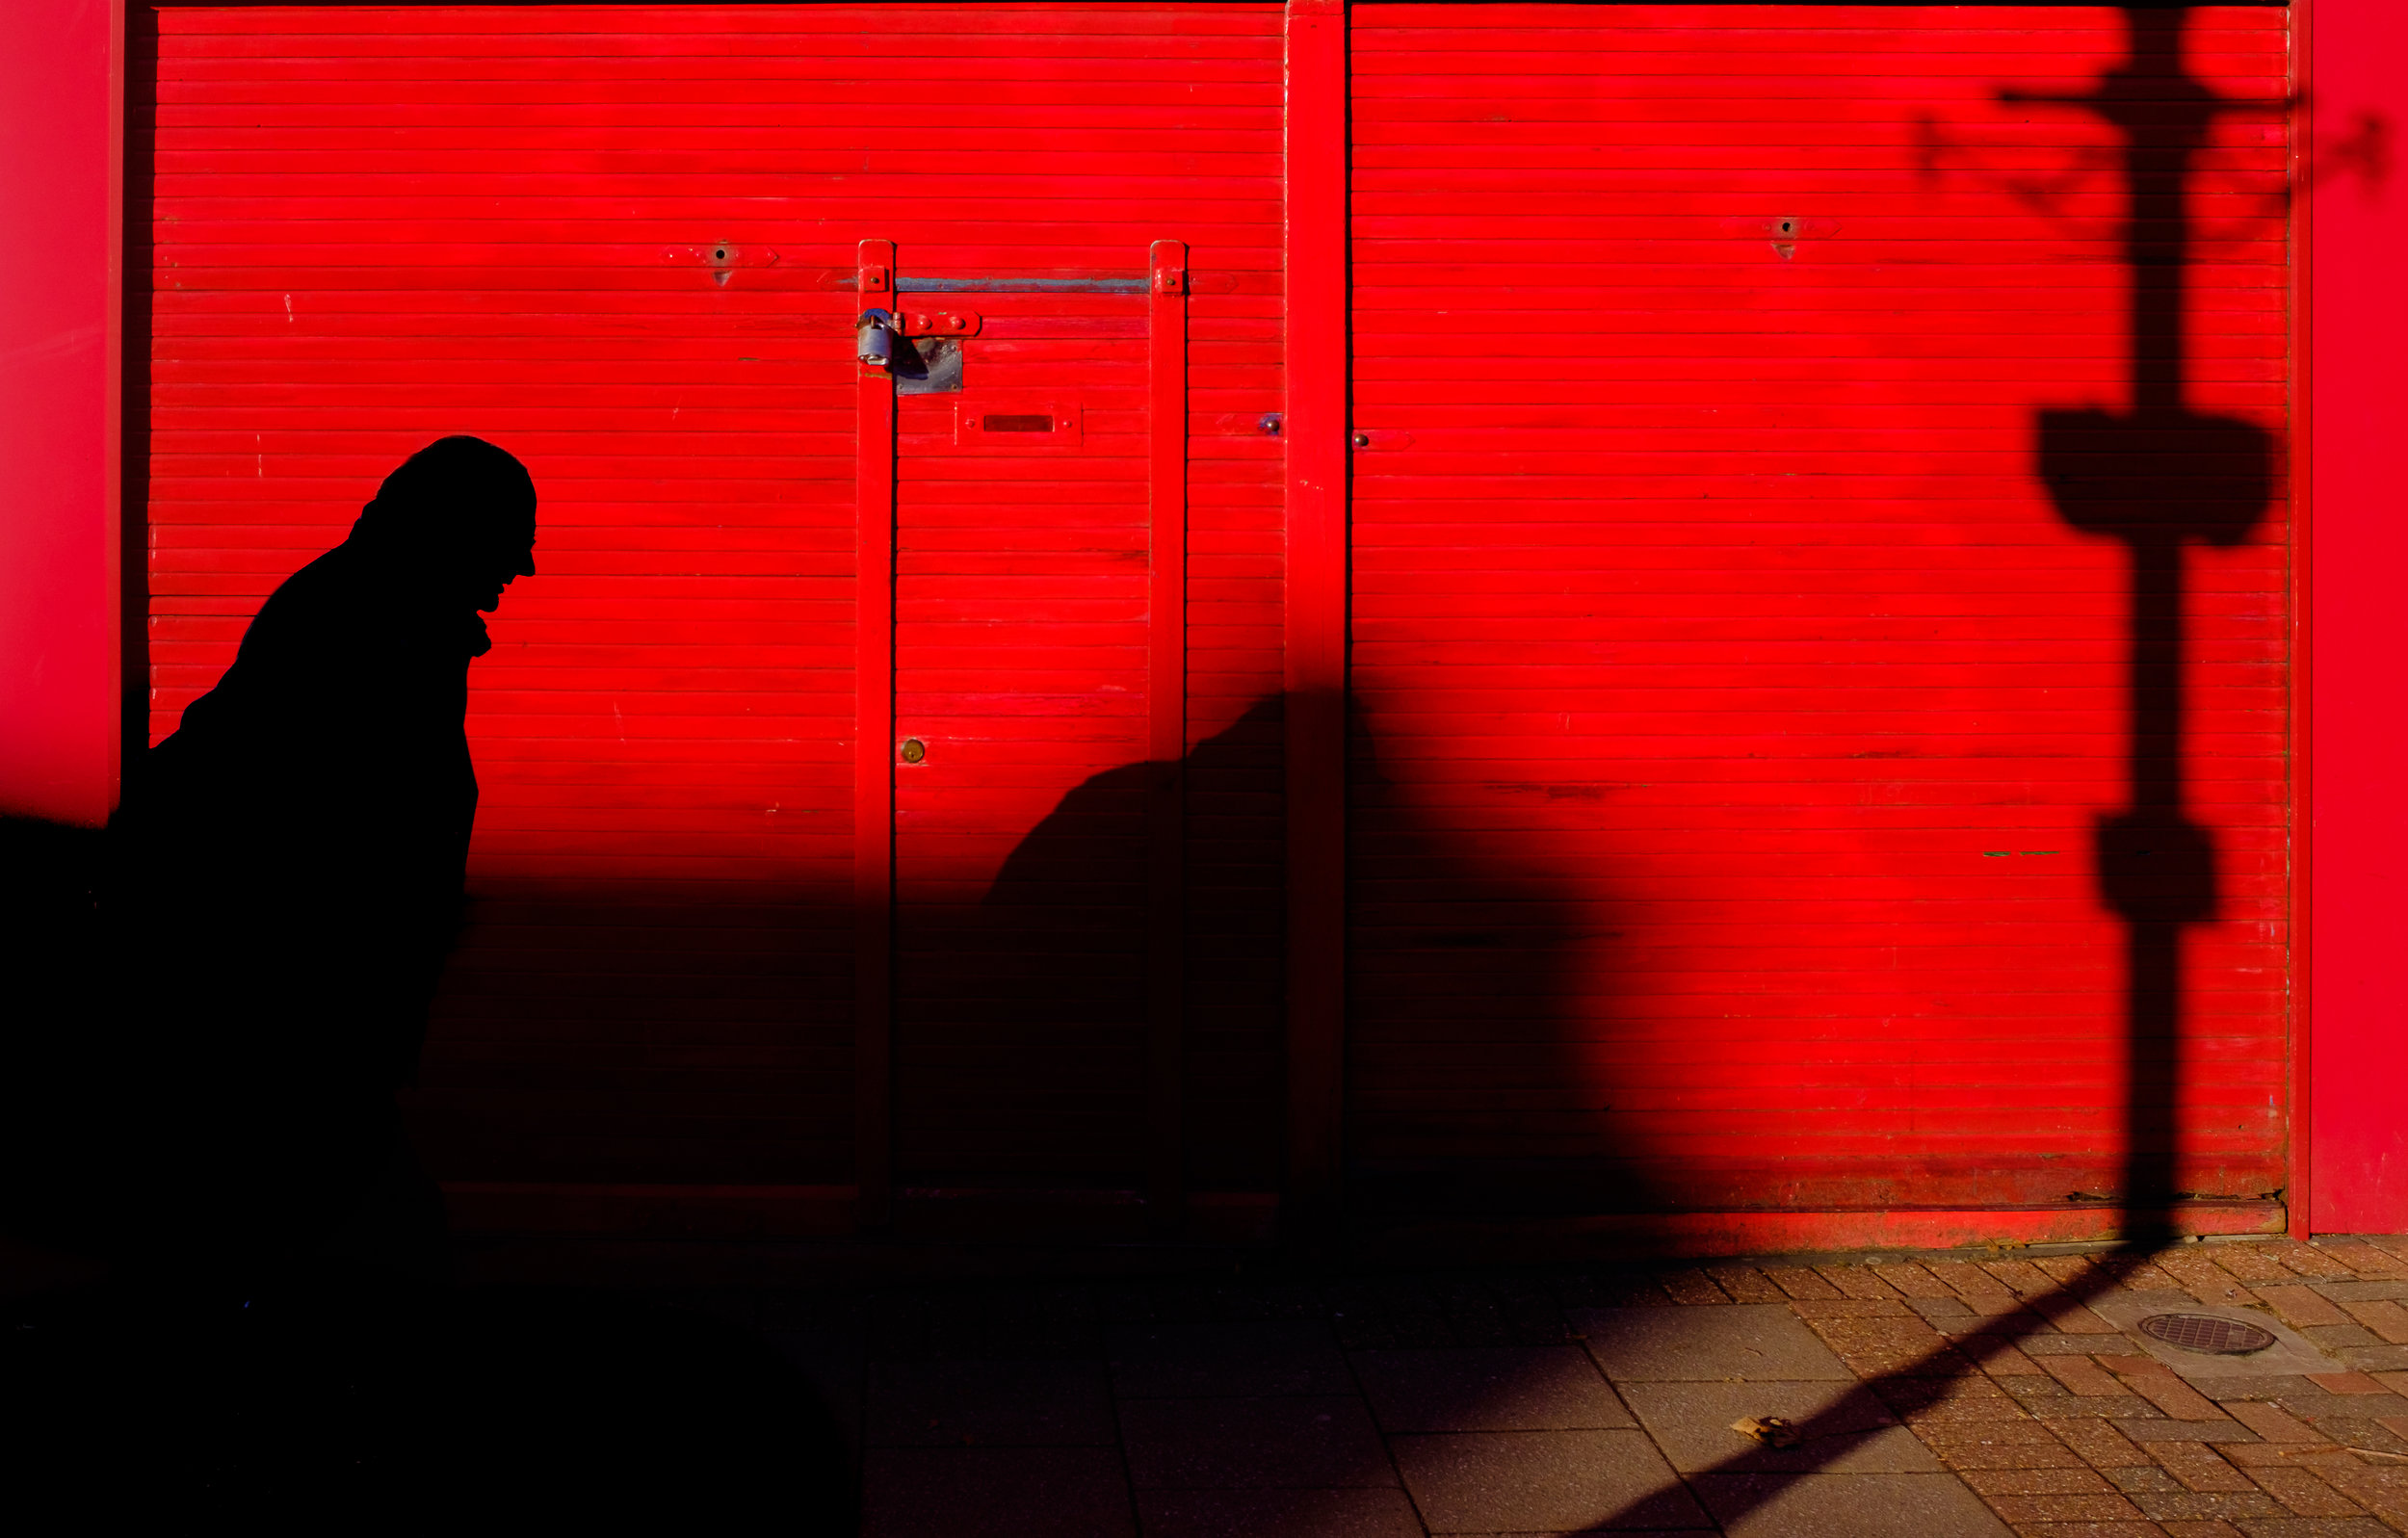 From the shadows -